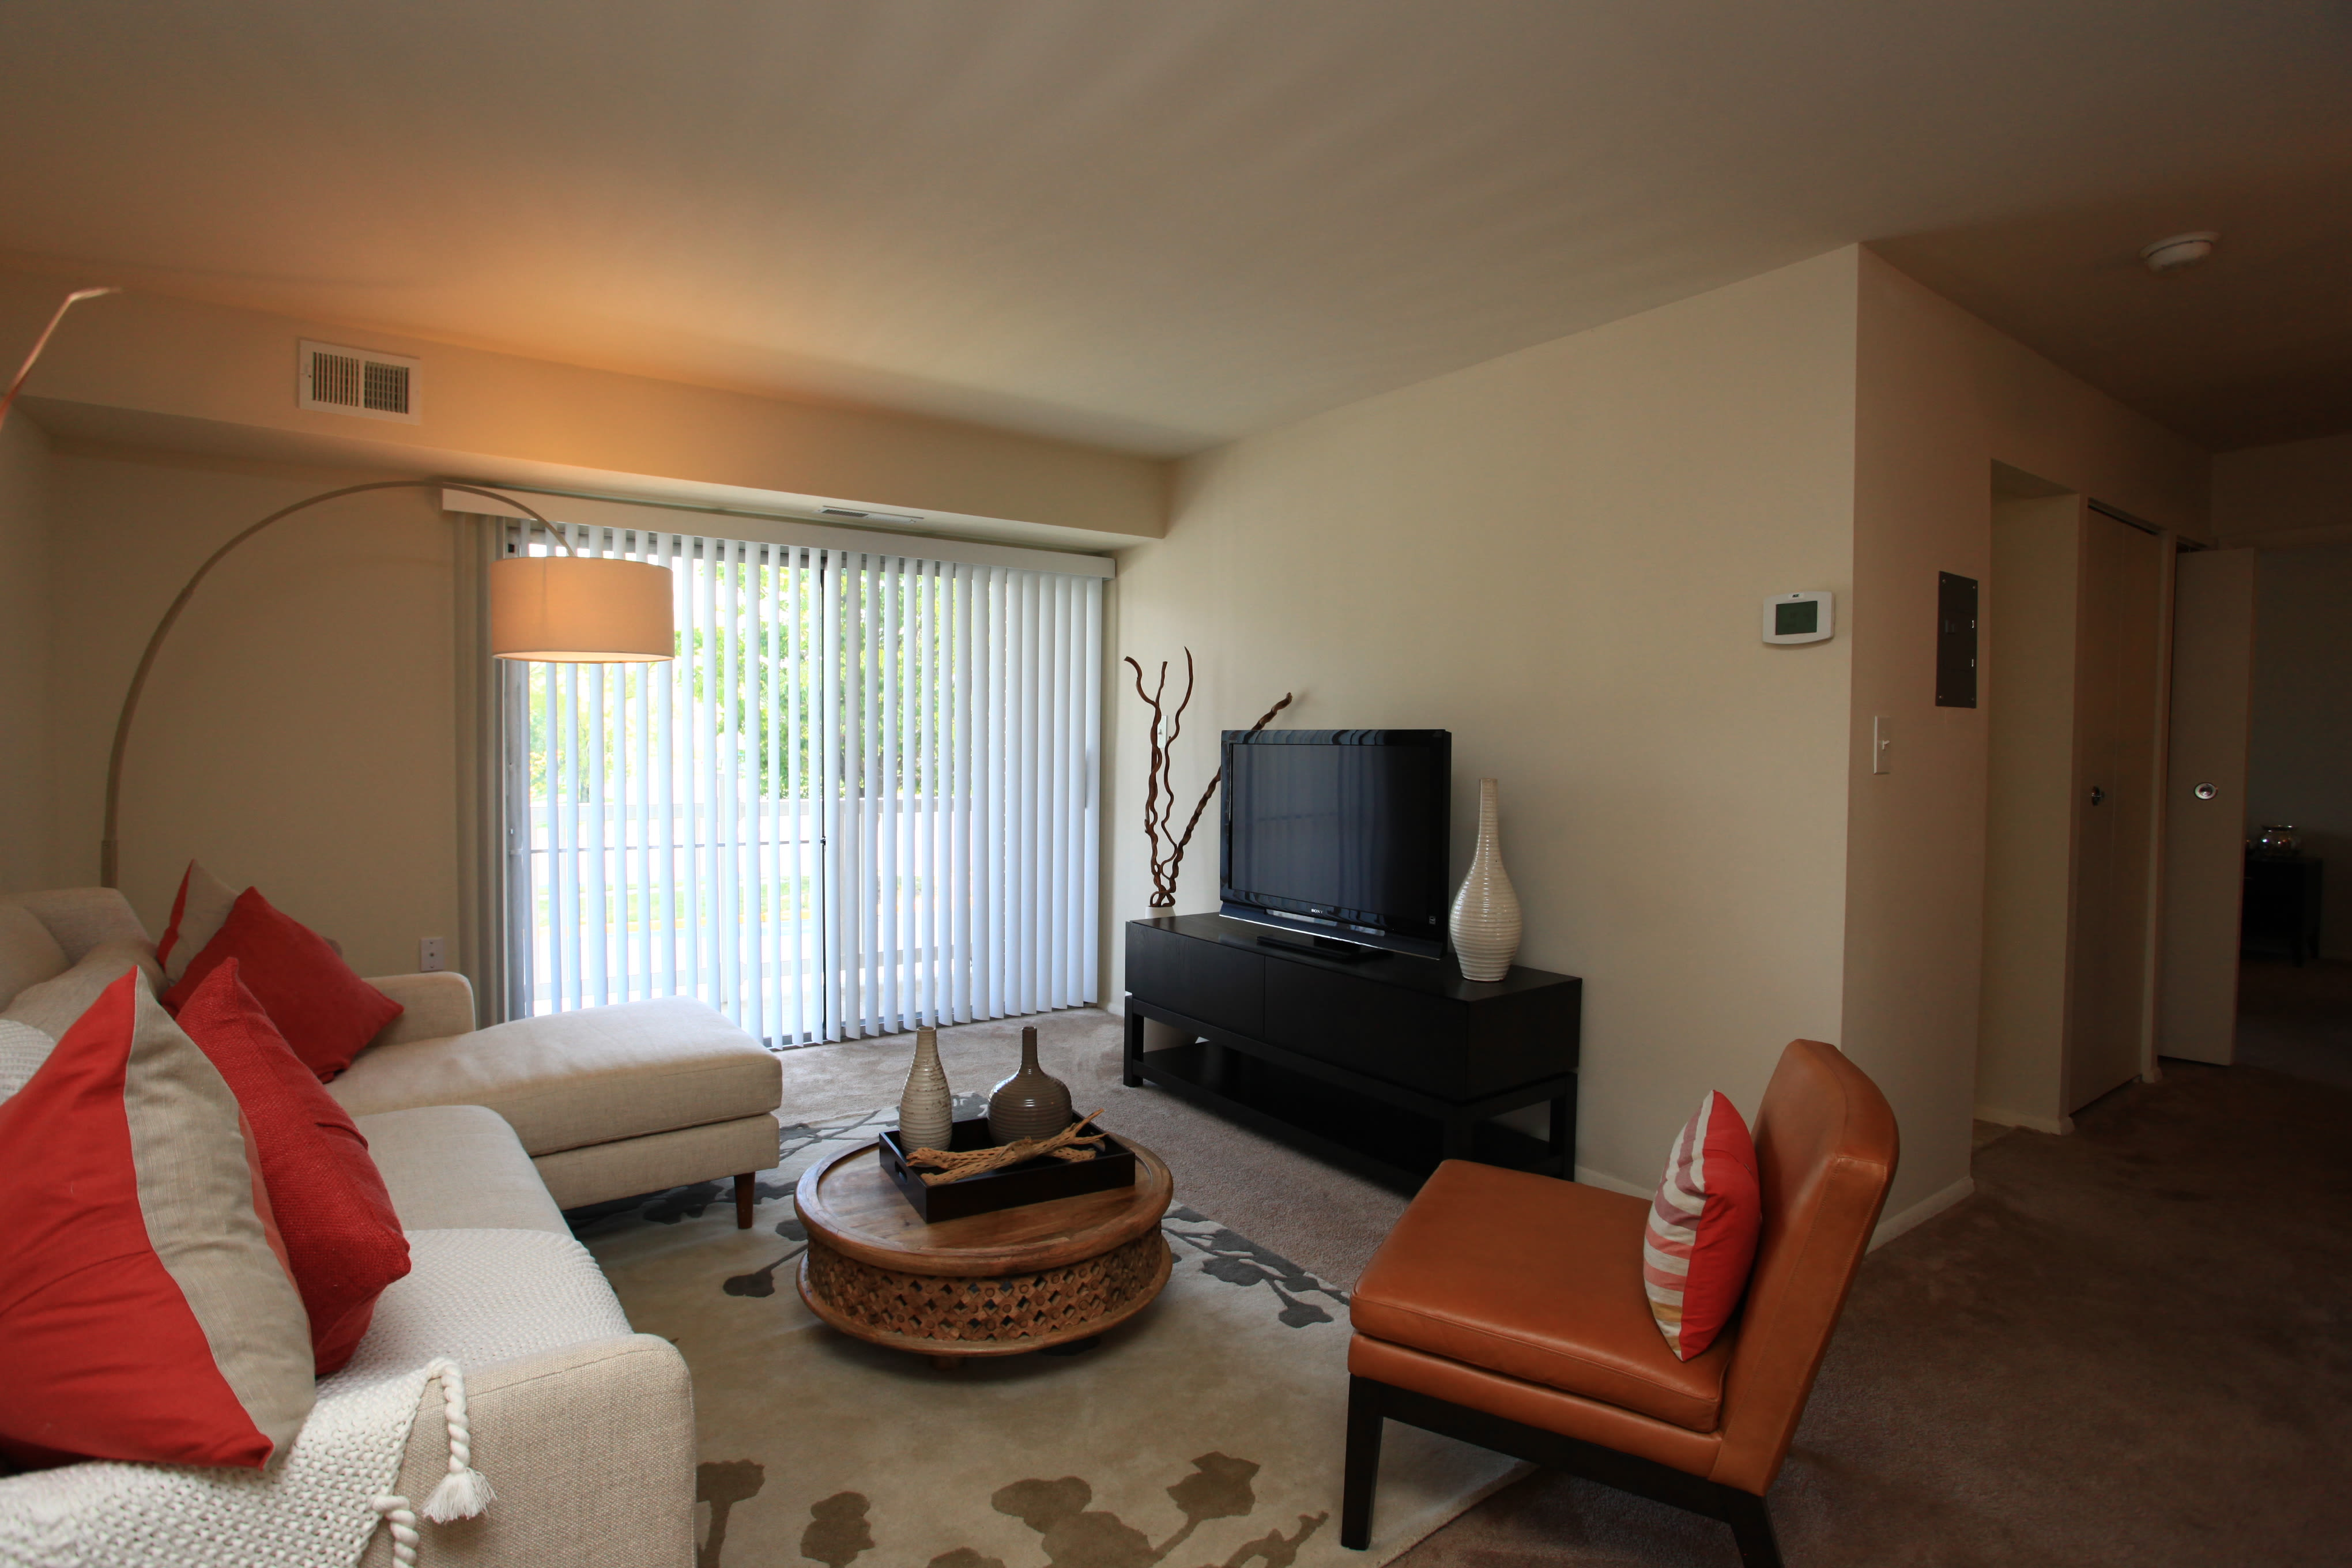 Our apartments in Middle River, Maryland showcase a beautiful living room